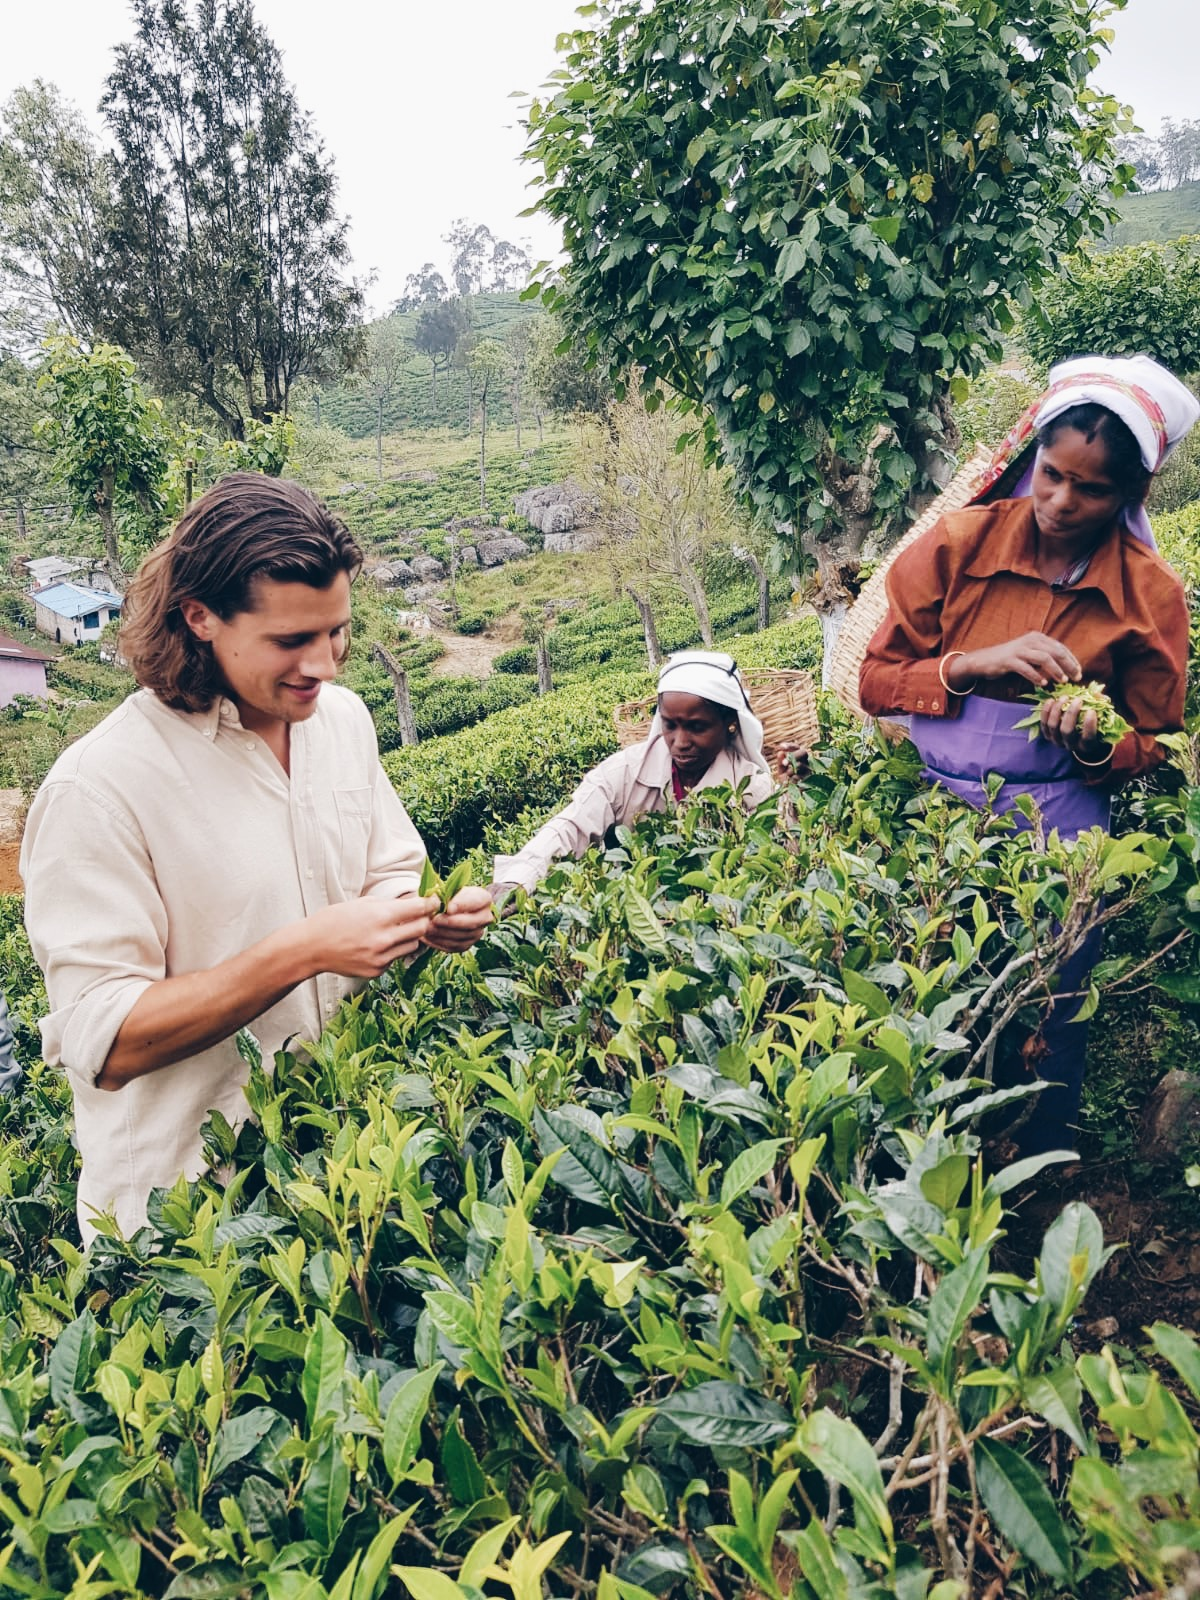 TEA FARM - The black tea in our delicious Turmeric Chai comes from high up in the lush, organic green hills of Haputale. It is always so lovely to meet the women that pluck the tea, a job that requires very petite fingers and attention to detail. Co-founder Tom had a go, but quickly learned how difficult it is to pick the best leaves.